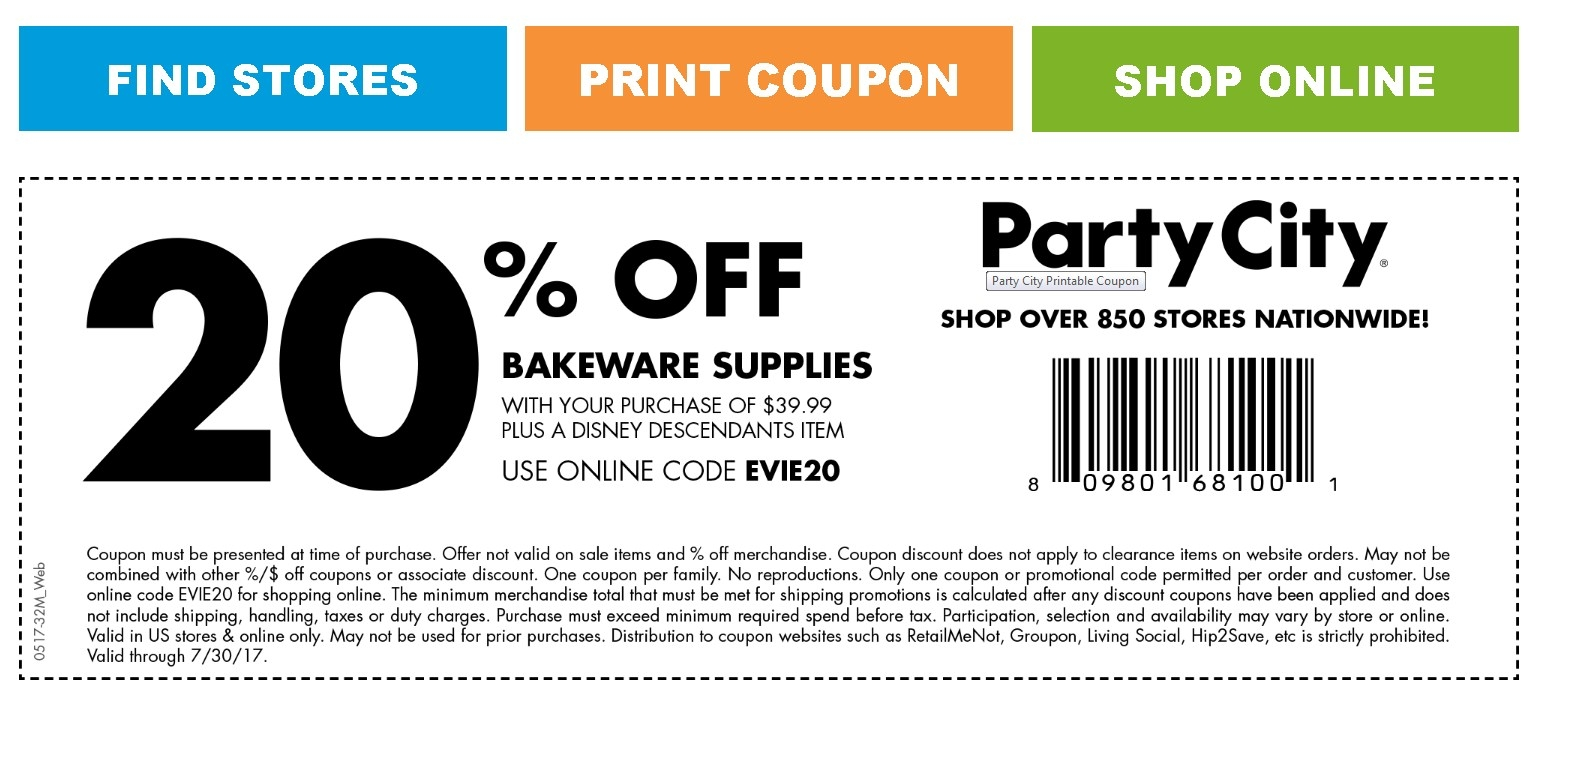 image regarding Party City Coupons Printable named Occasion metropolis discount coupons 10 off 30 : Boulevard suzuki coupon